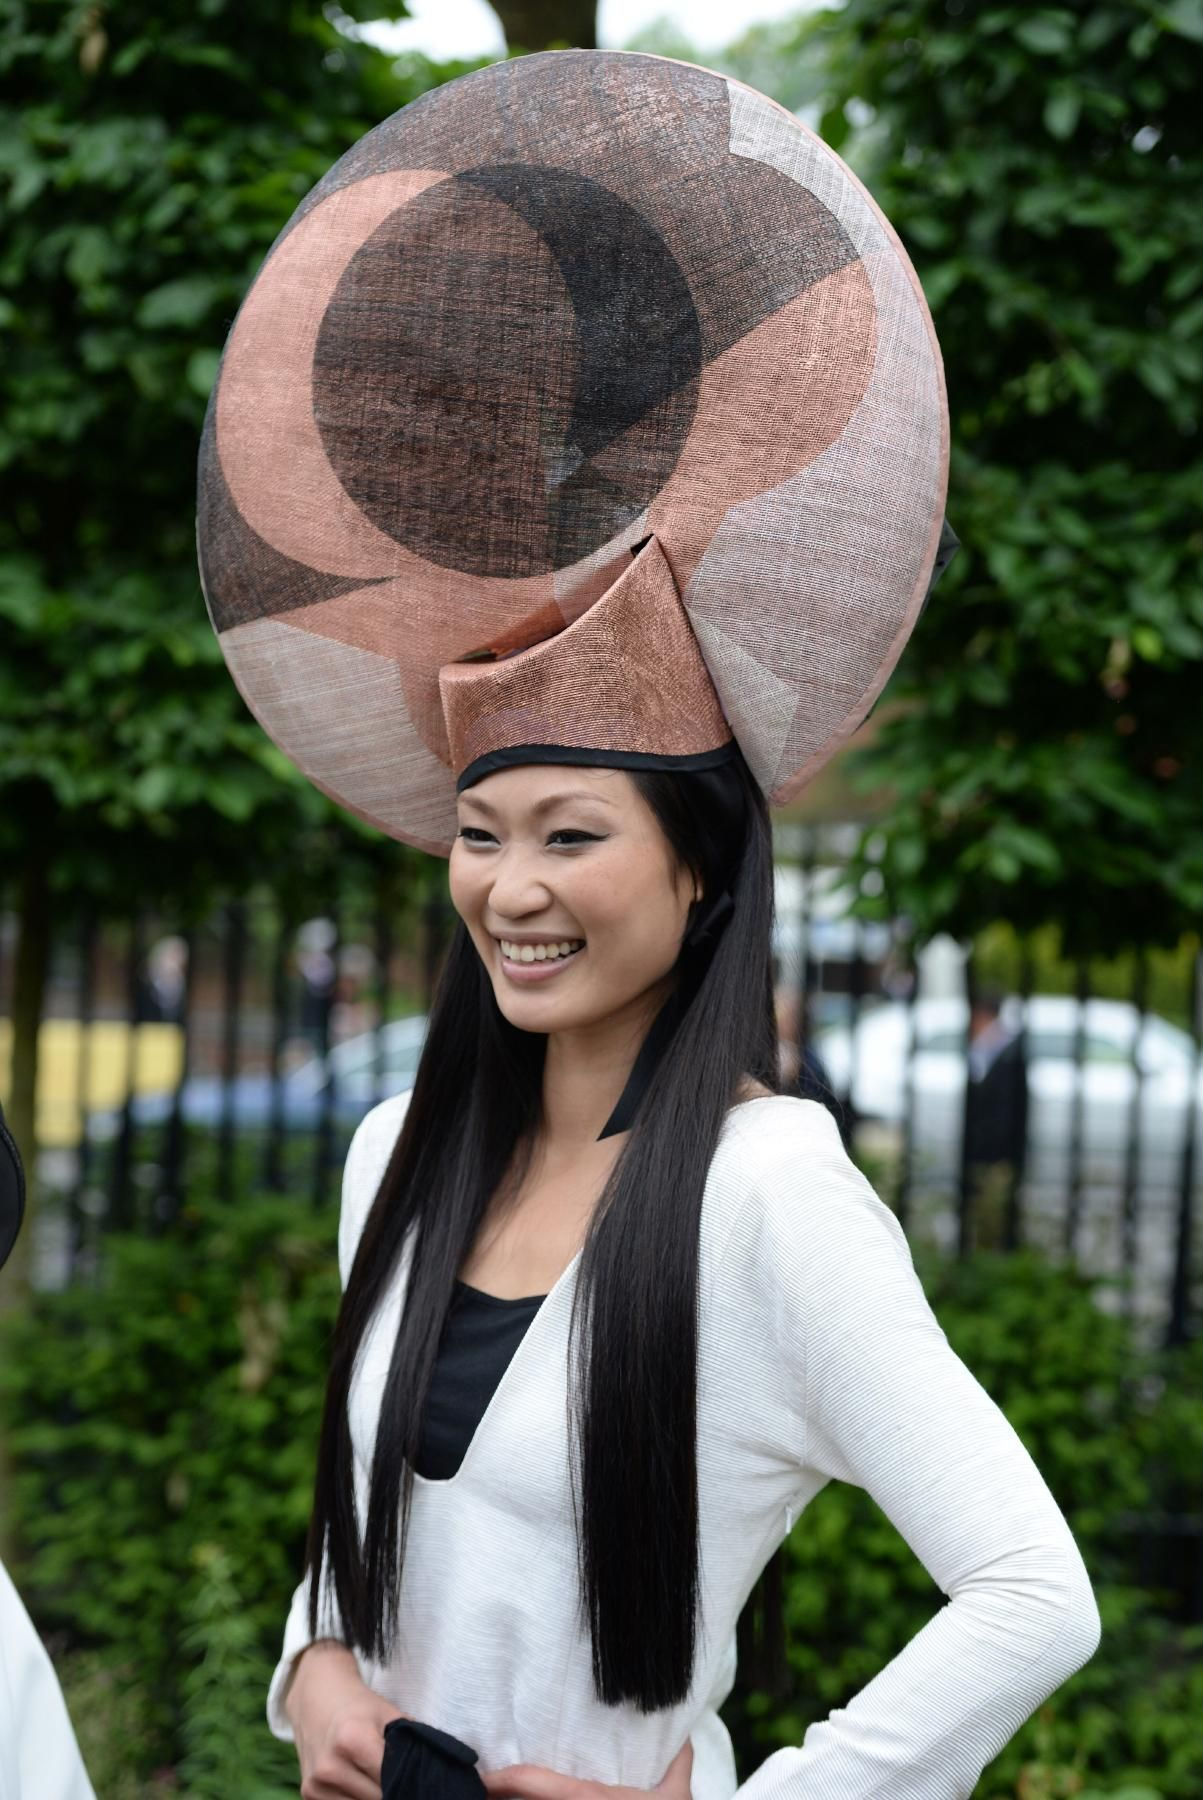 The Craziest Hats   Fascinators From Royal Ascot - The Cut  3b335cd72bff